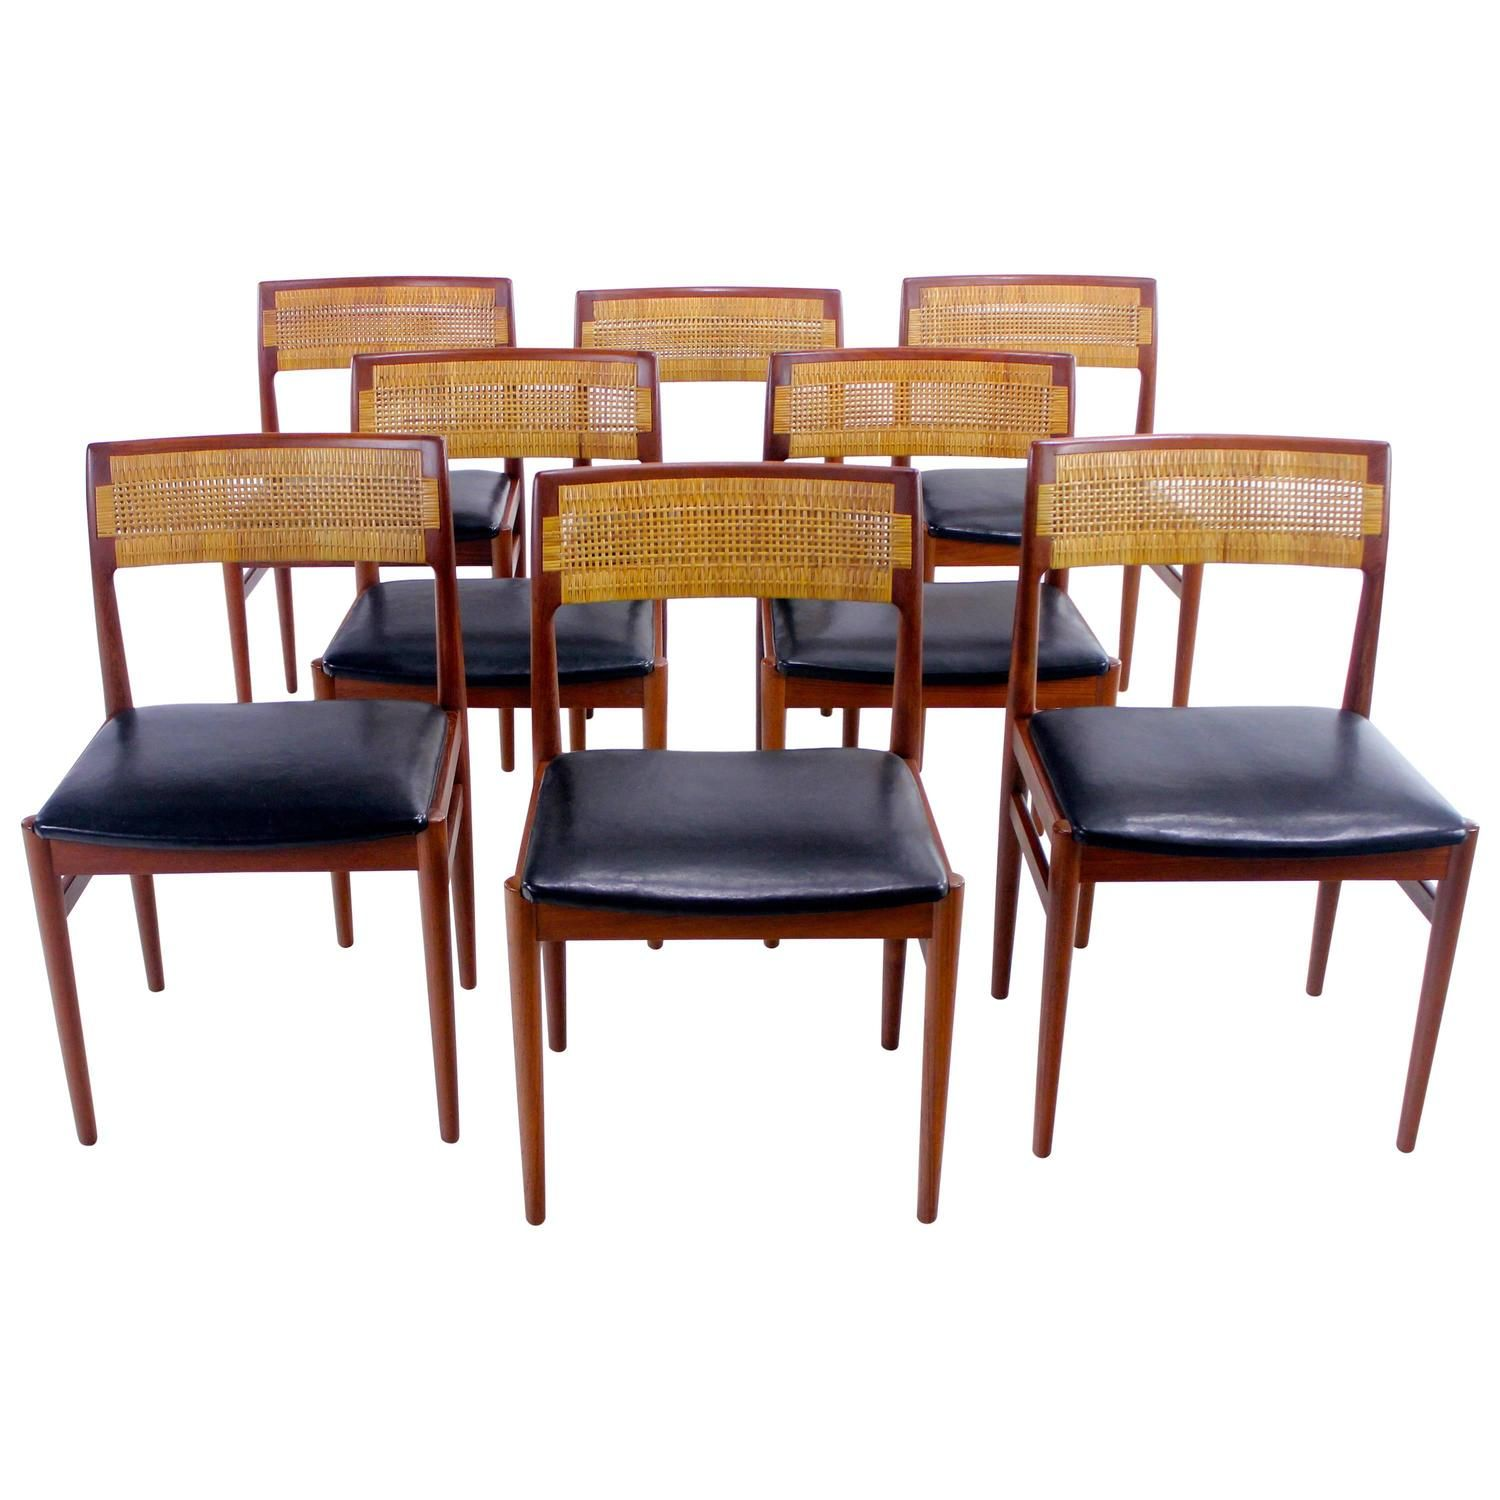 Danish Modern Dining Chairs For Sale Set Of Eight Distinctive Danish Modern Teak Dining Chairs Designed